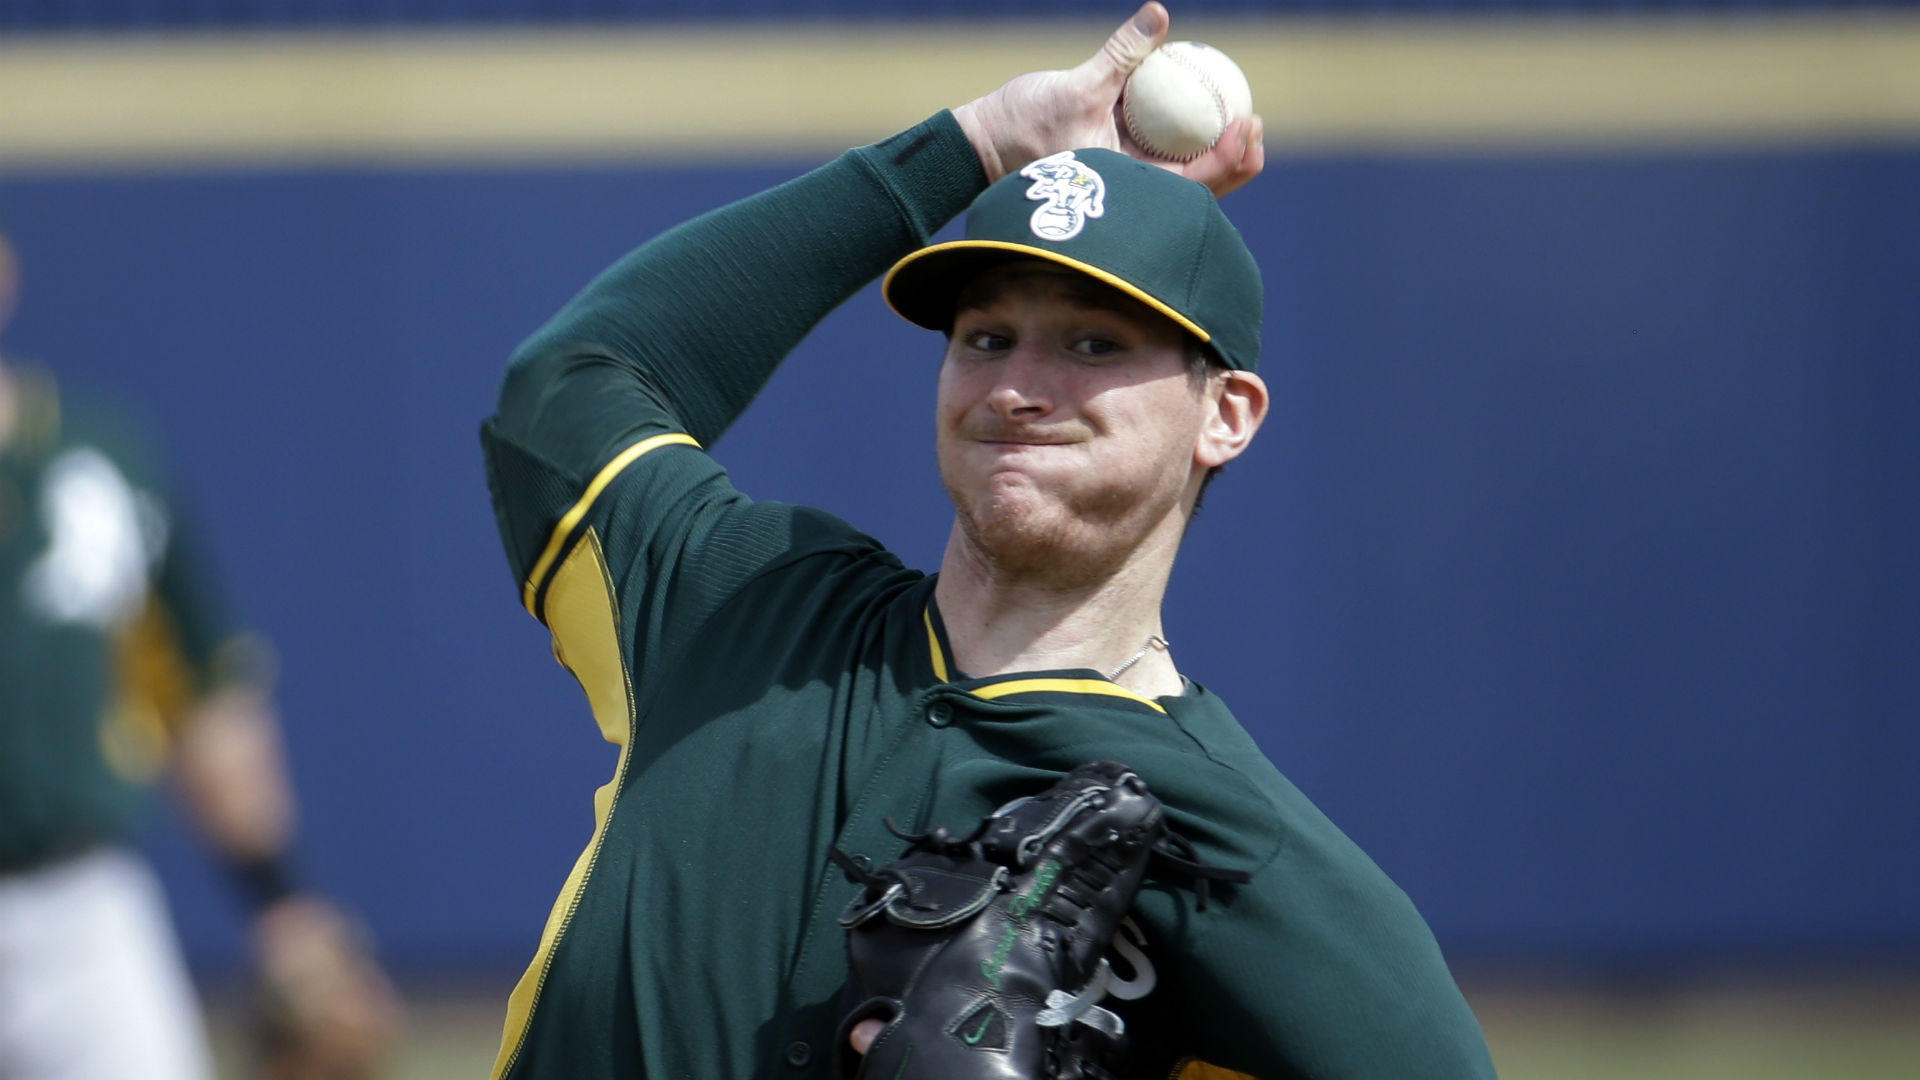 Has Oakland's ballpark turned the entire A's rotation into fantasy sleepers?